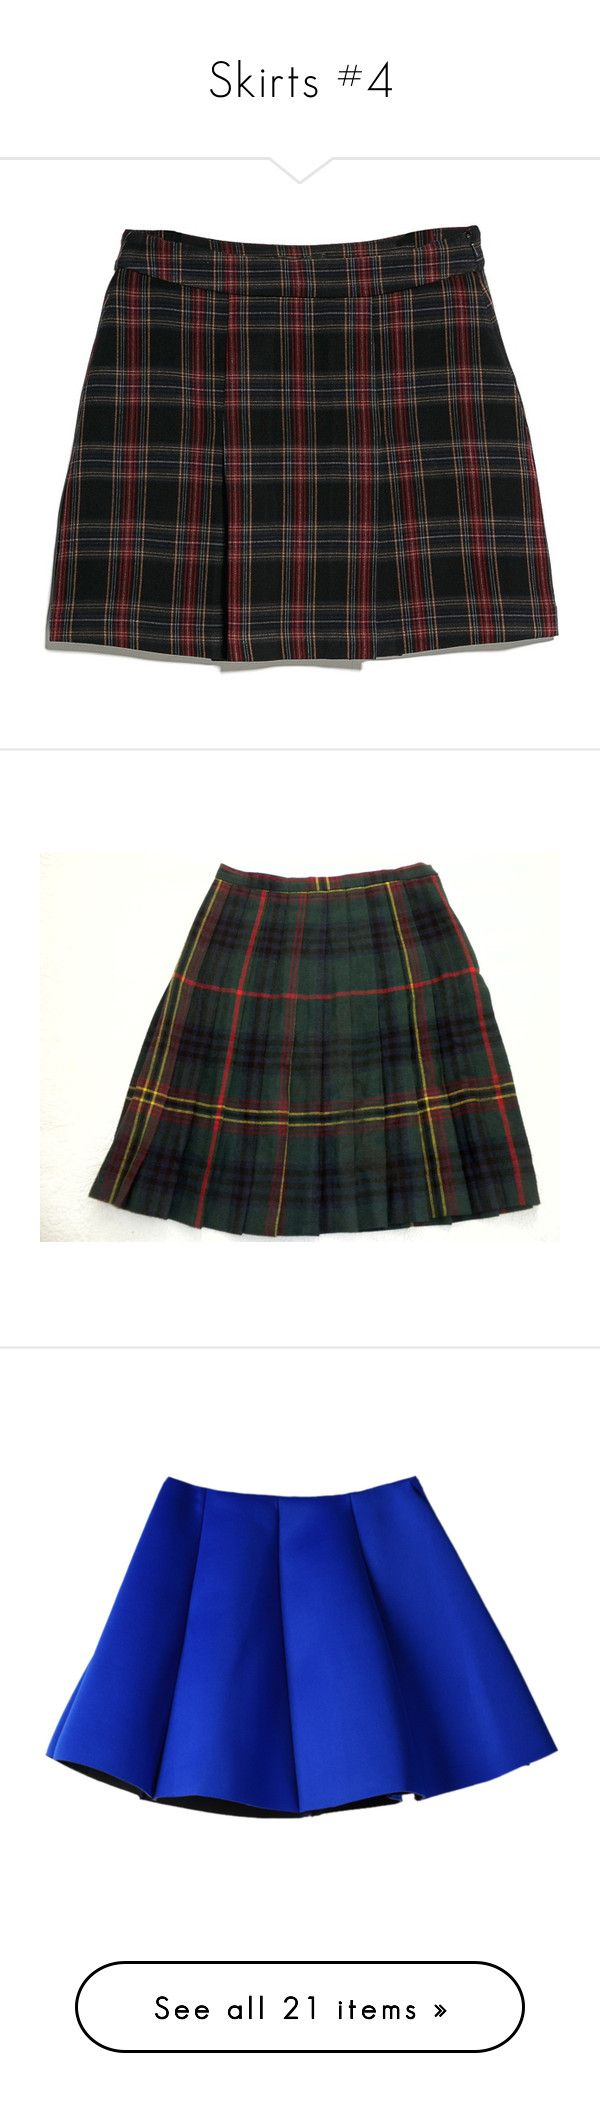 """""""Skirts #4"""" by aaronhainsley ❤ liked on Polyvore featuring skirts, mini skirts, bottoms, plaid, yellow, brown mini skirt, yellow tartan skirt, yellow plaid skirt, forever 21 skirts and brown skirt"""